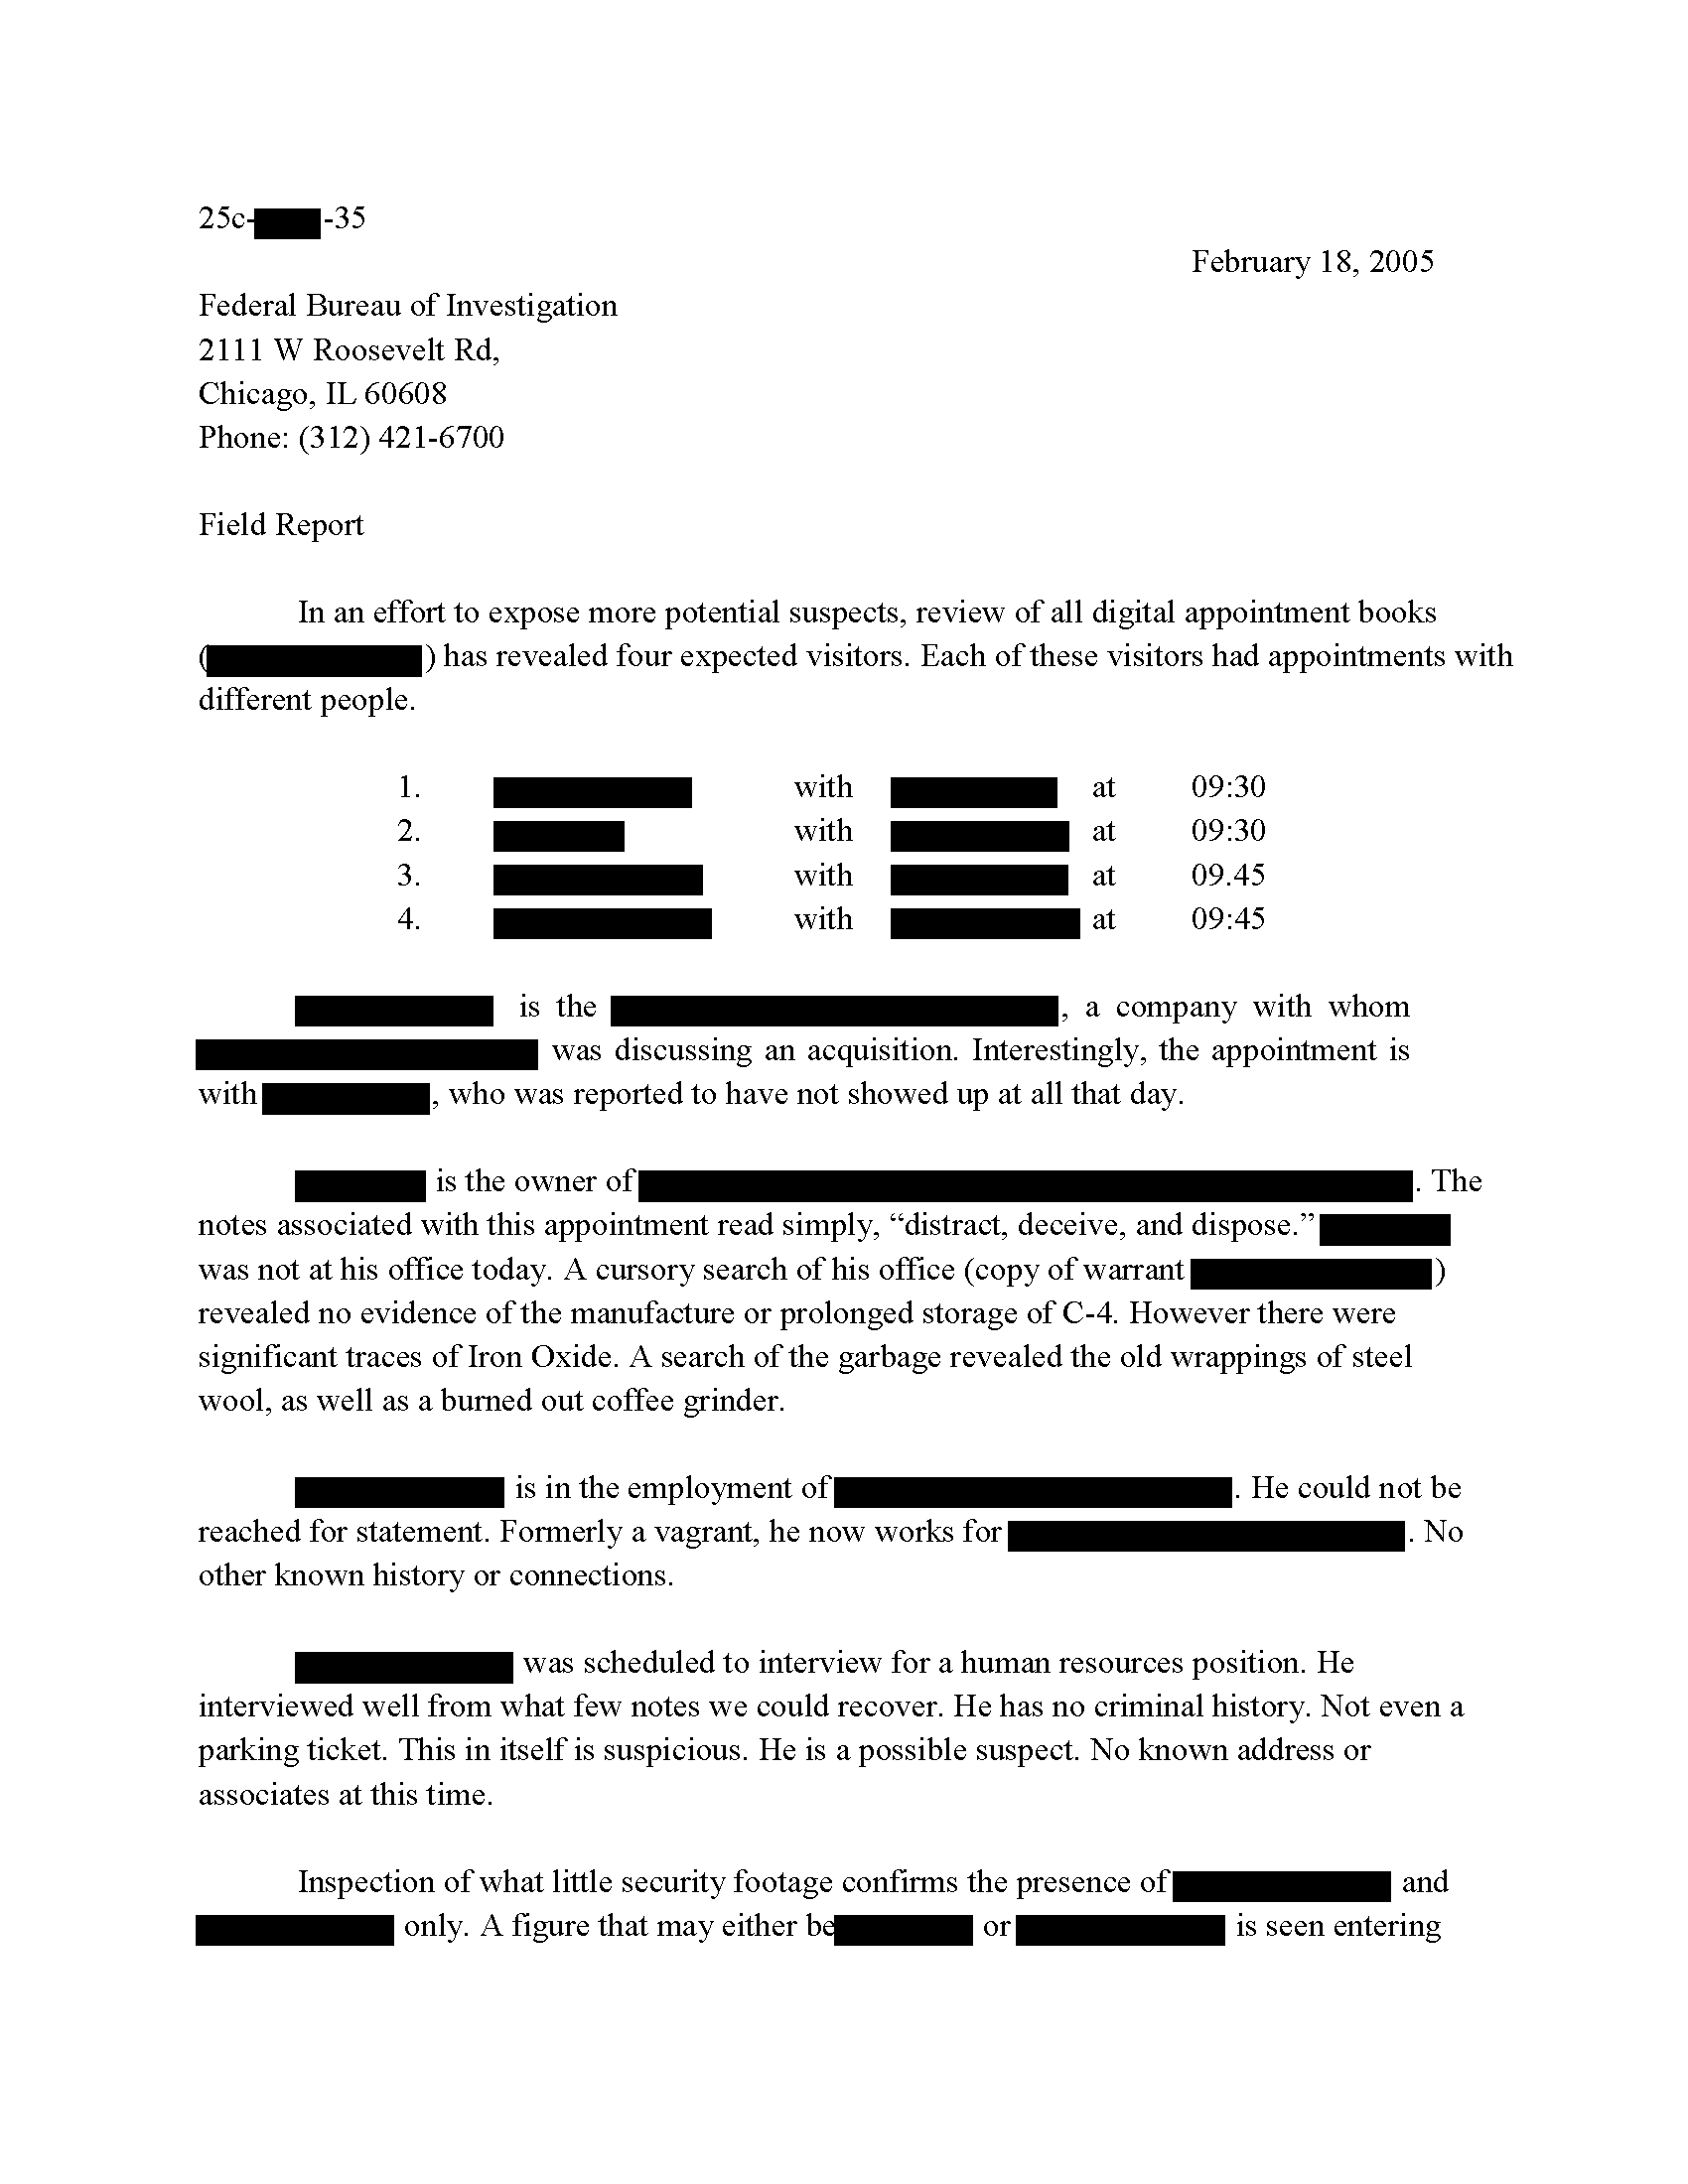 Documents-Redacted_Redacted_2_Page_2.png